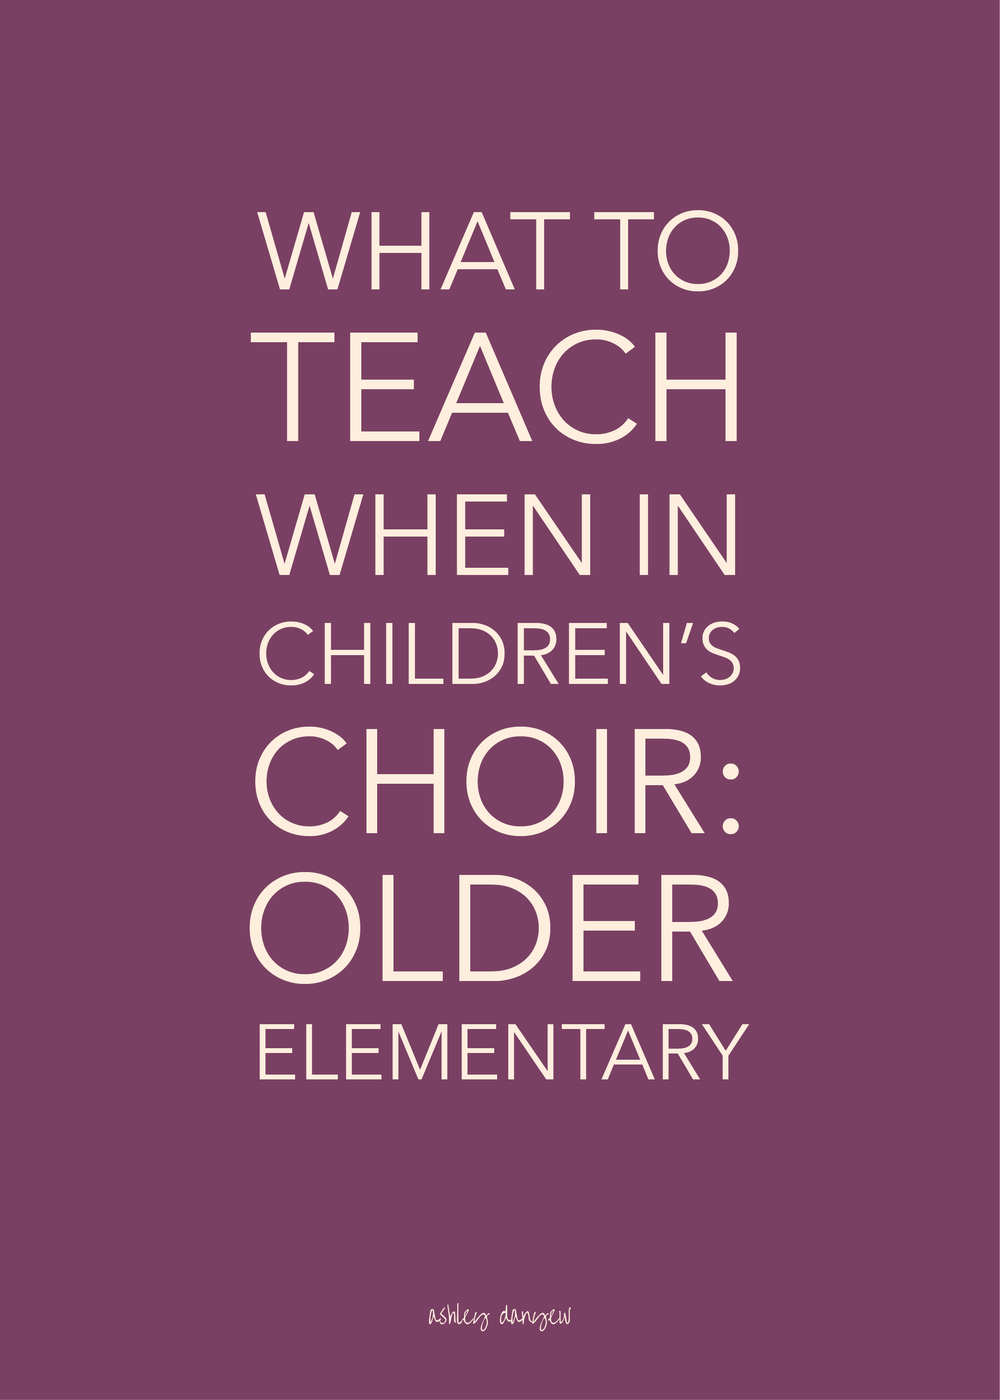 What to Teach When in Children's Choir - Older Elementary-05.png